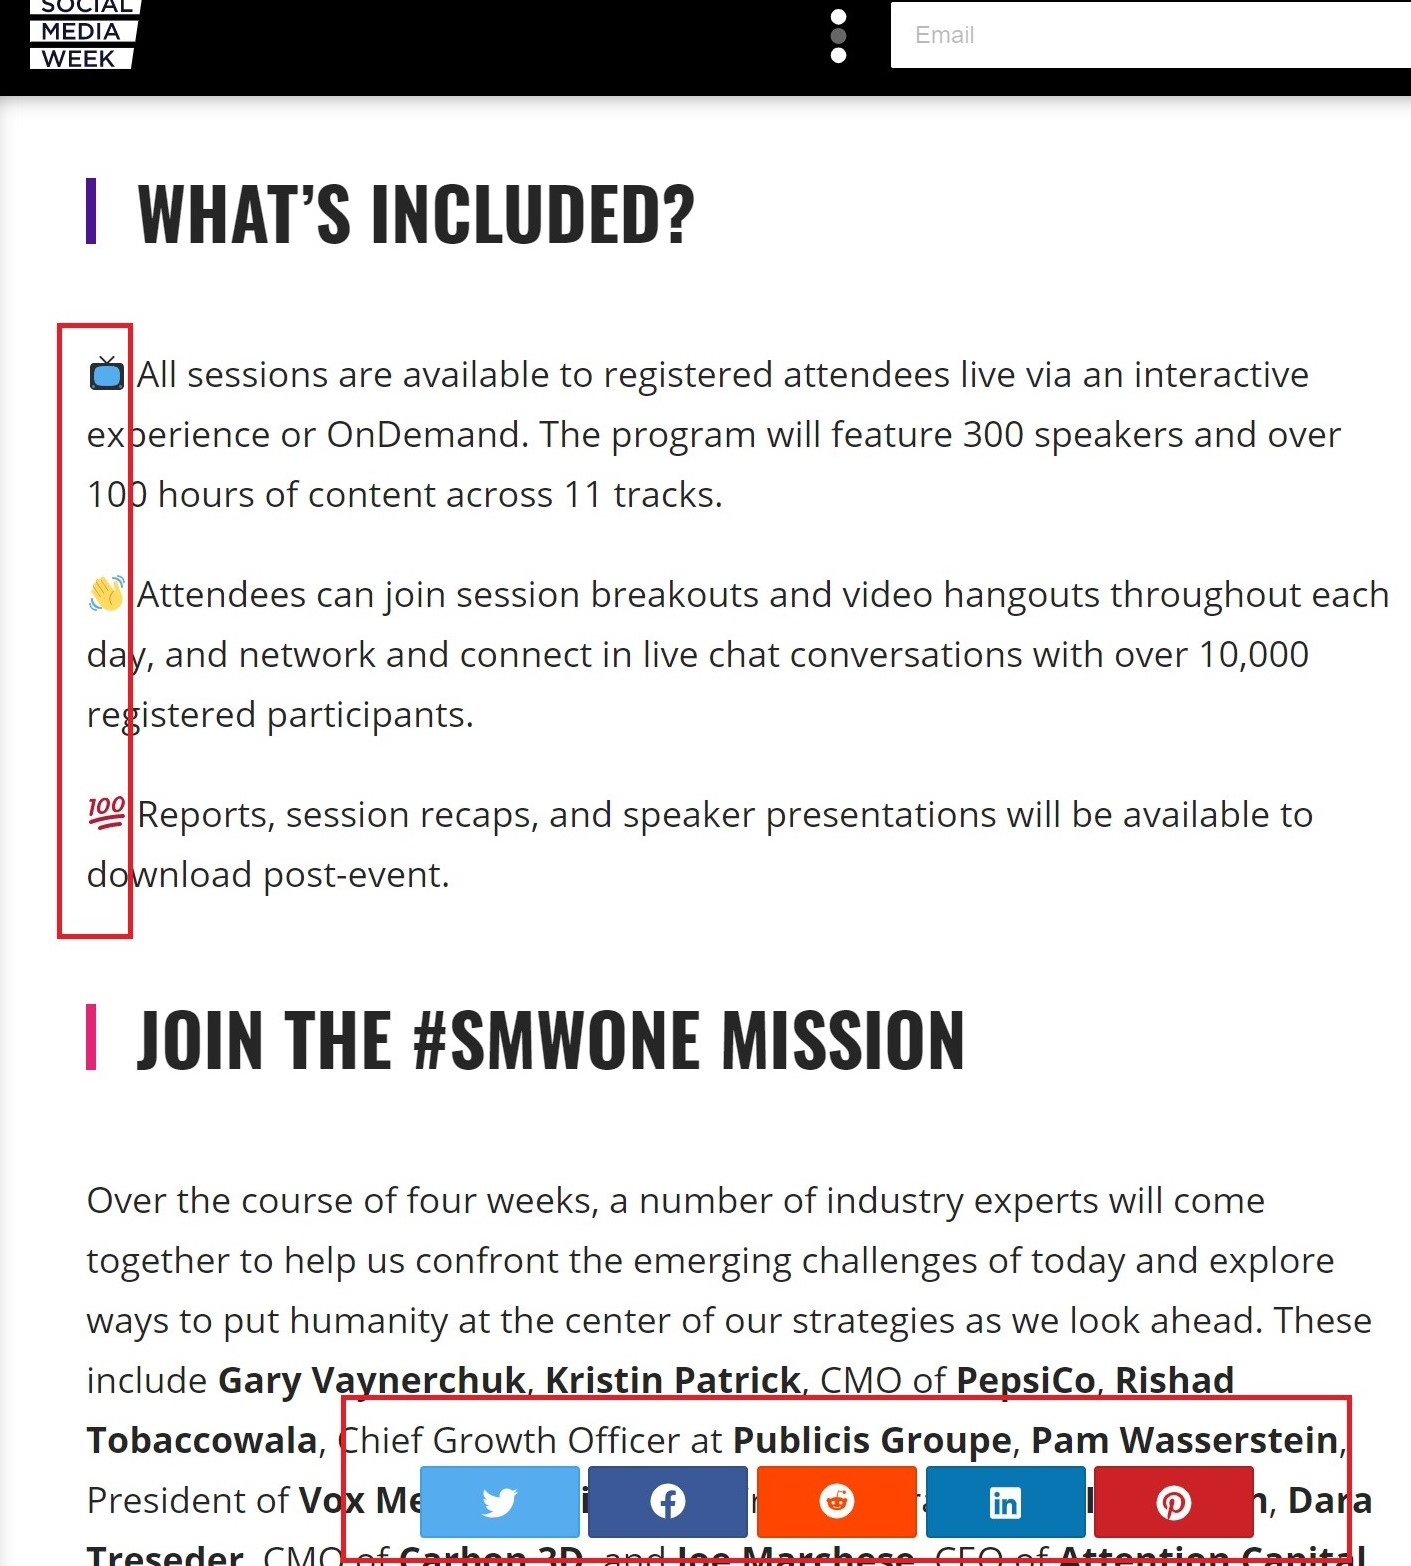 press release example from Social Media Week